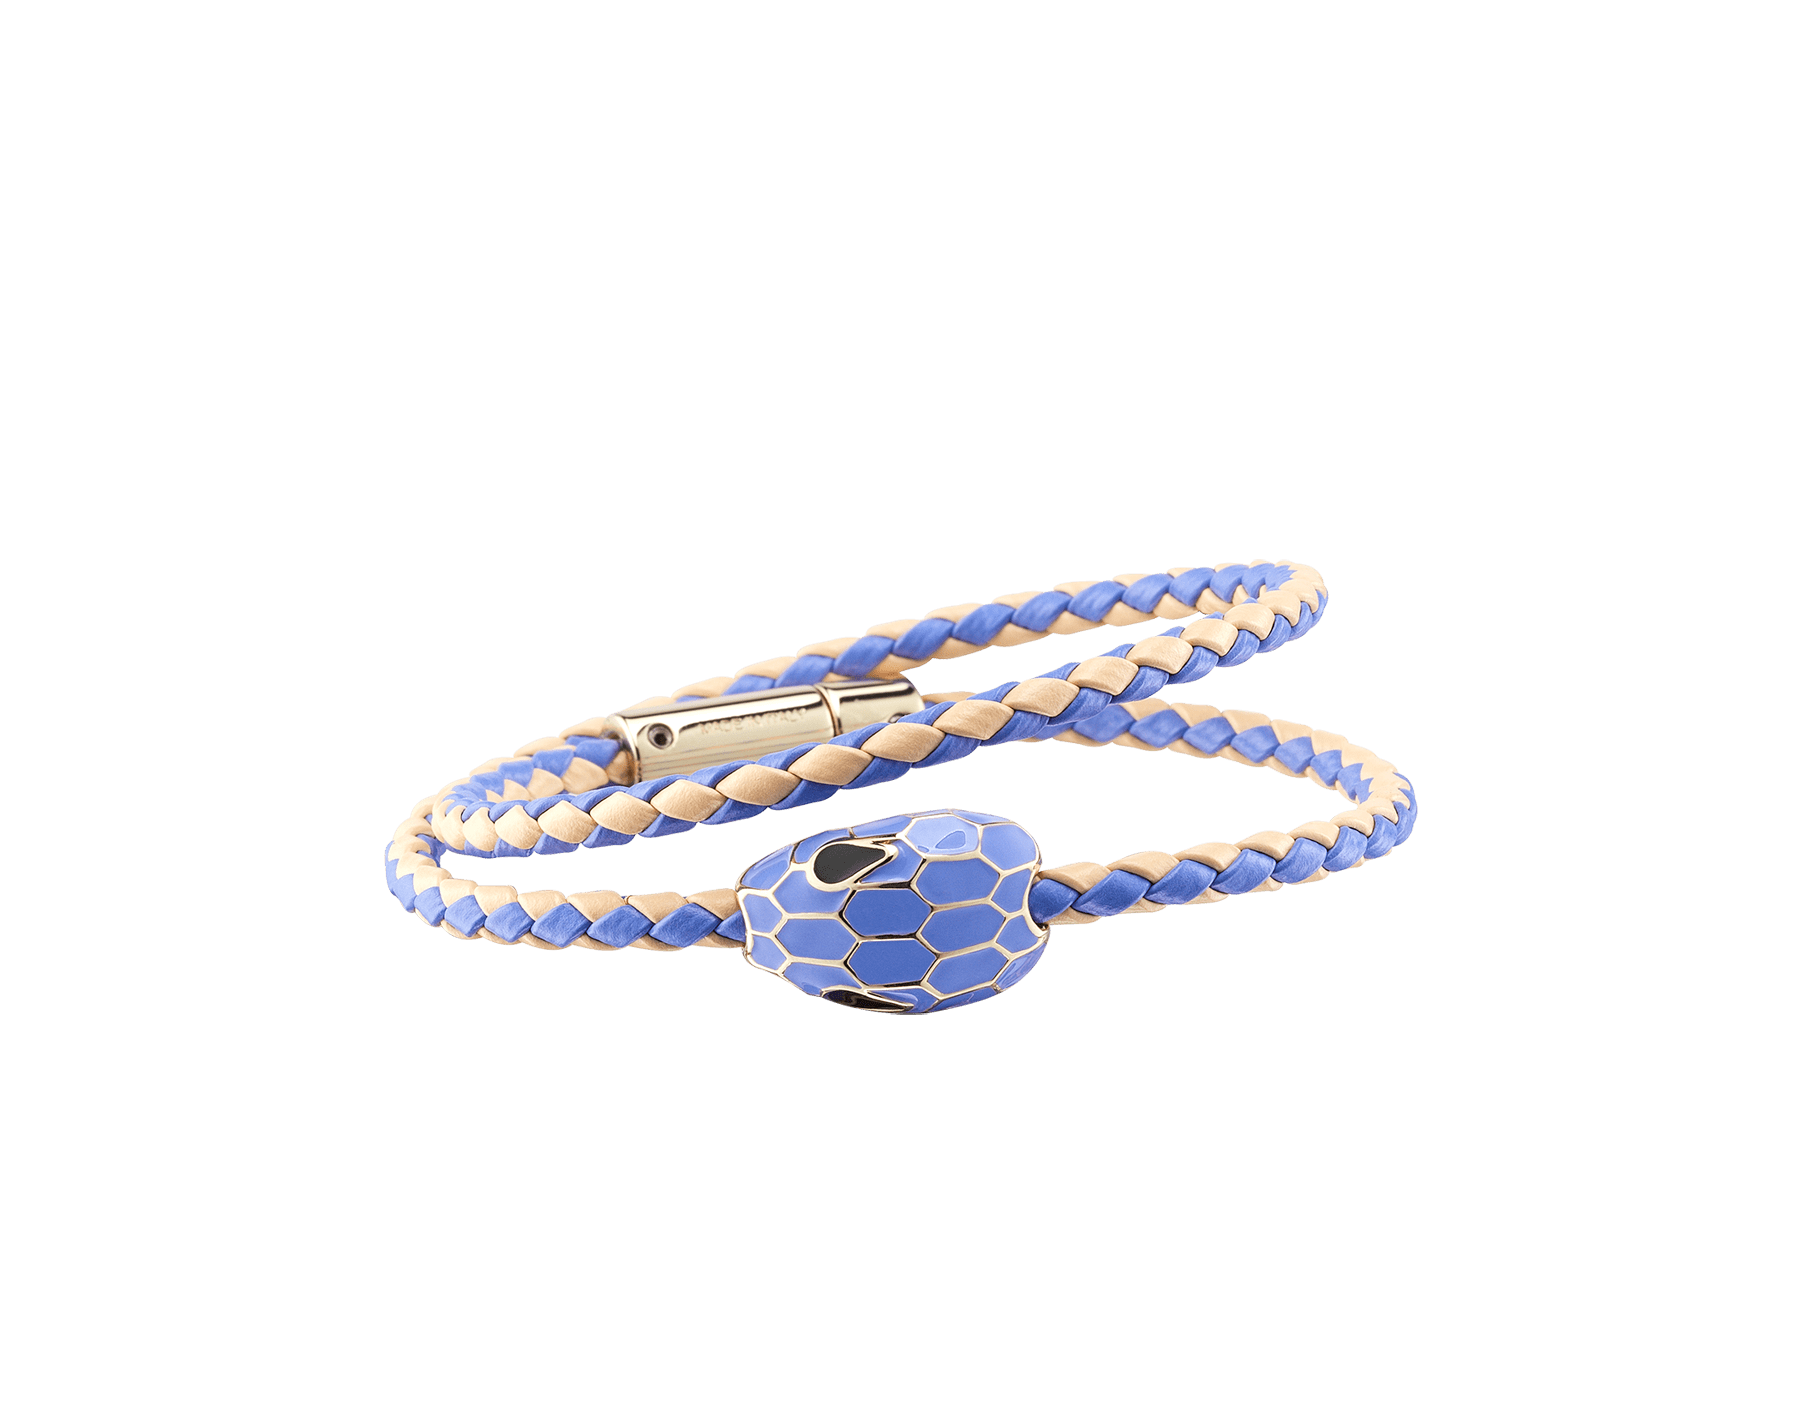 """""""Serpenti Forever"""" multi-coiled braid bracelet in Lavender Amethyst lilac and peach woven calf leather, with the alluring snakehead décor in full Lavender Amethyst lilac enamel with seductive black enamel eyes. SerpDoubleBraid-WCL-LAP image 1"""